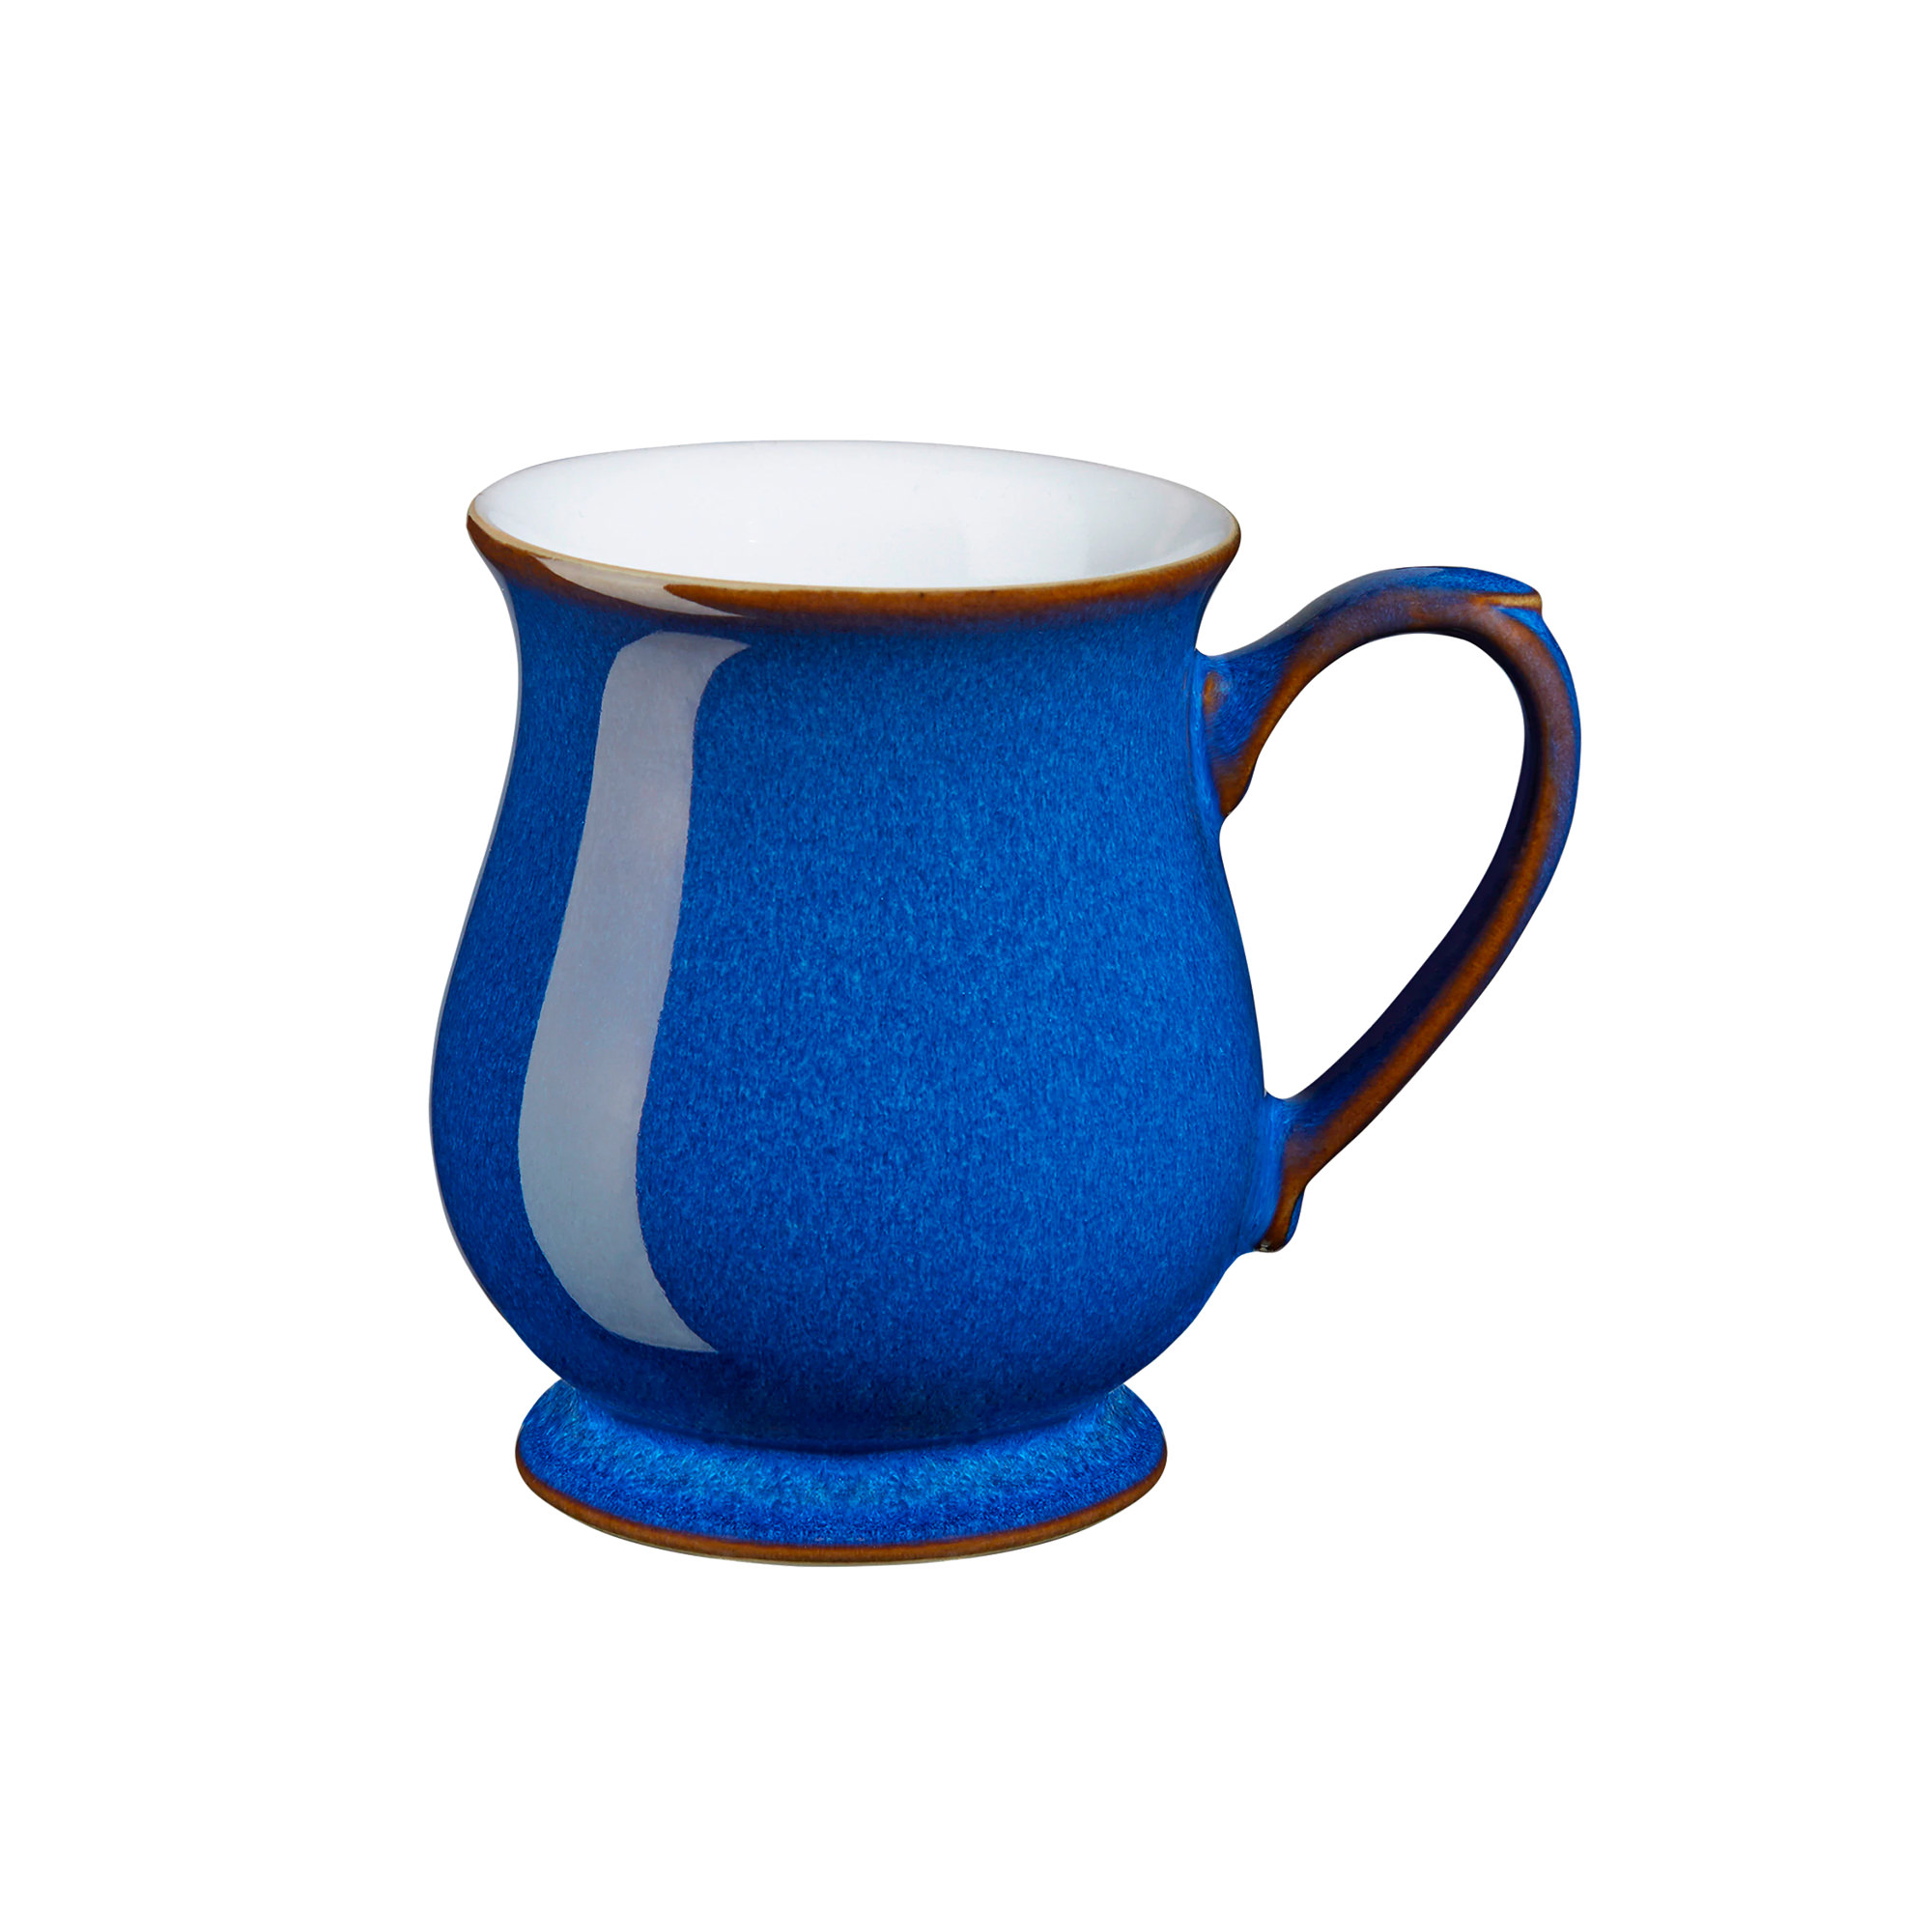 Denby Imperial Blue Craftsman's Mug 300ml